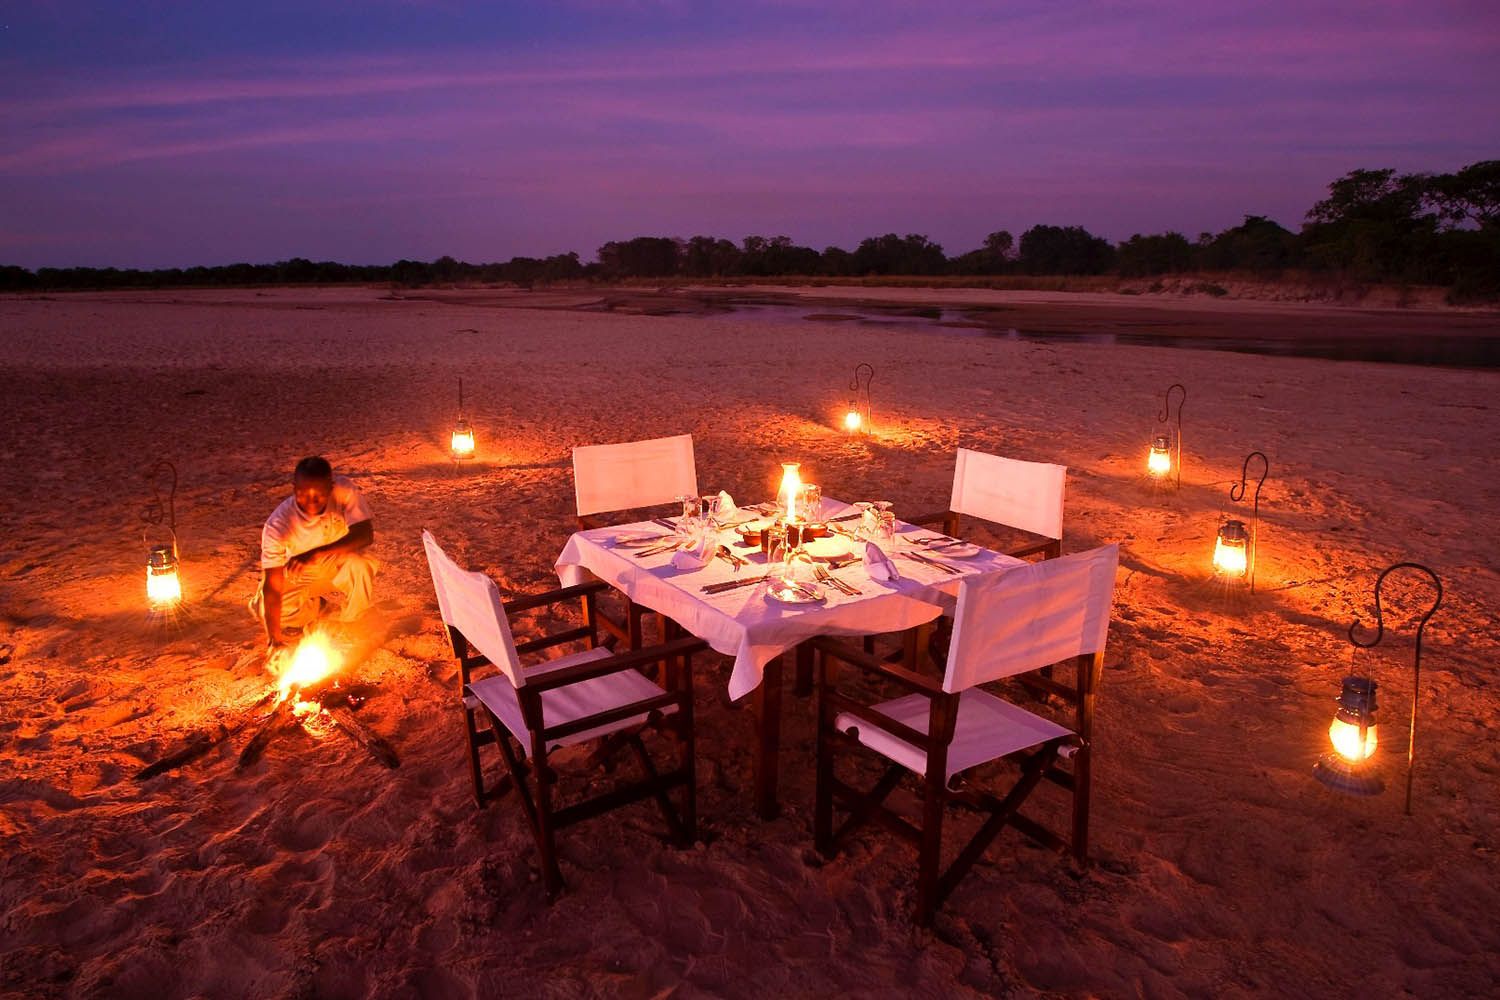 luwi-camp-lodge-zambia-in-style-tours-safari-packages-lodges-south-luangwa-national-park-dining-outdoors